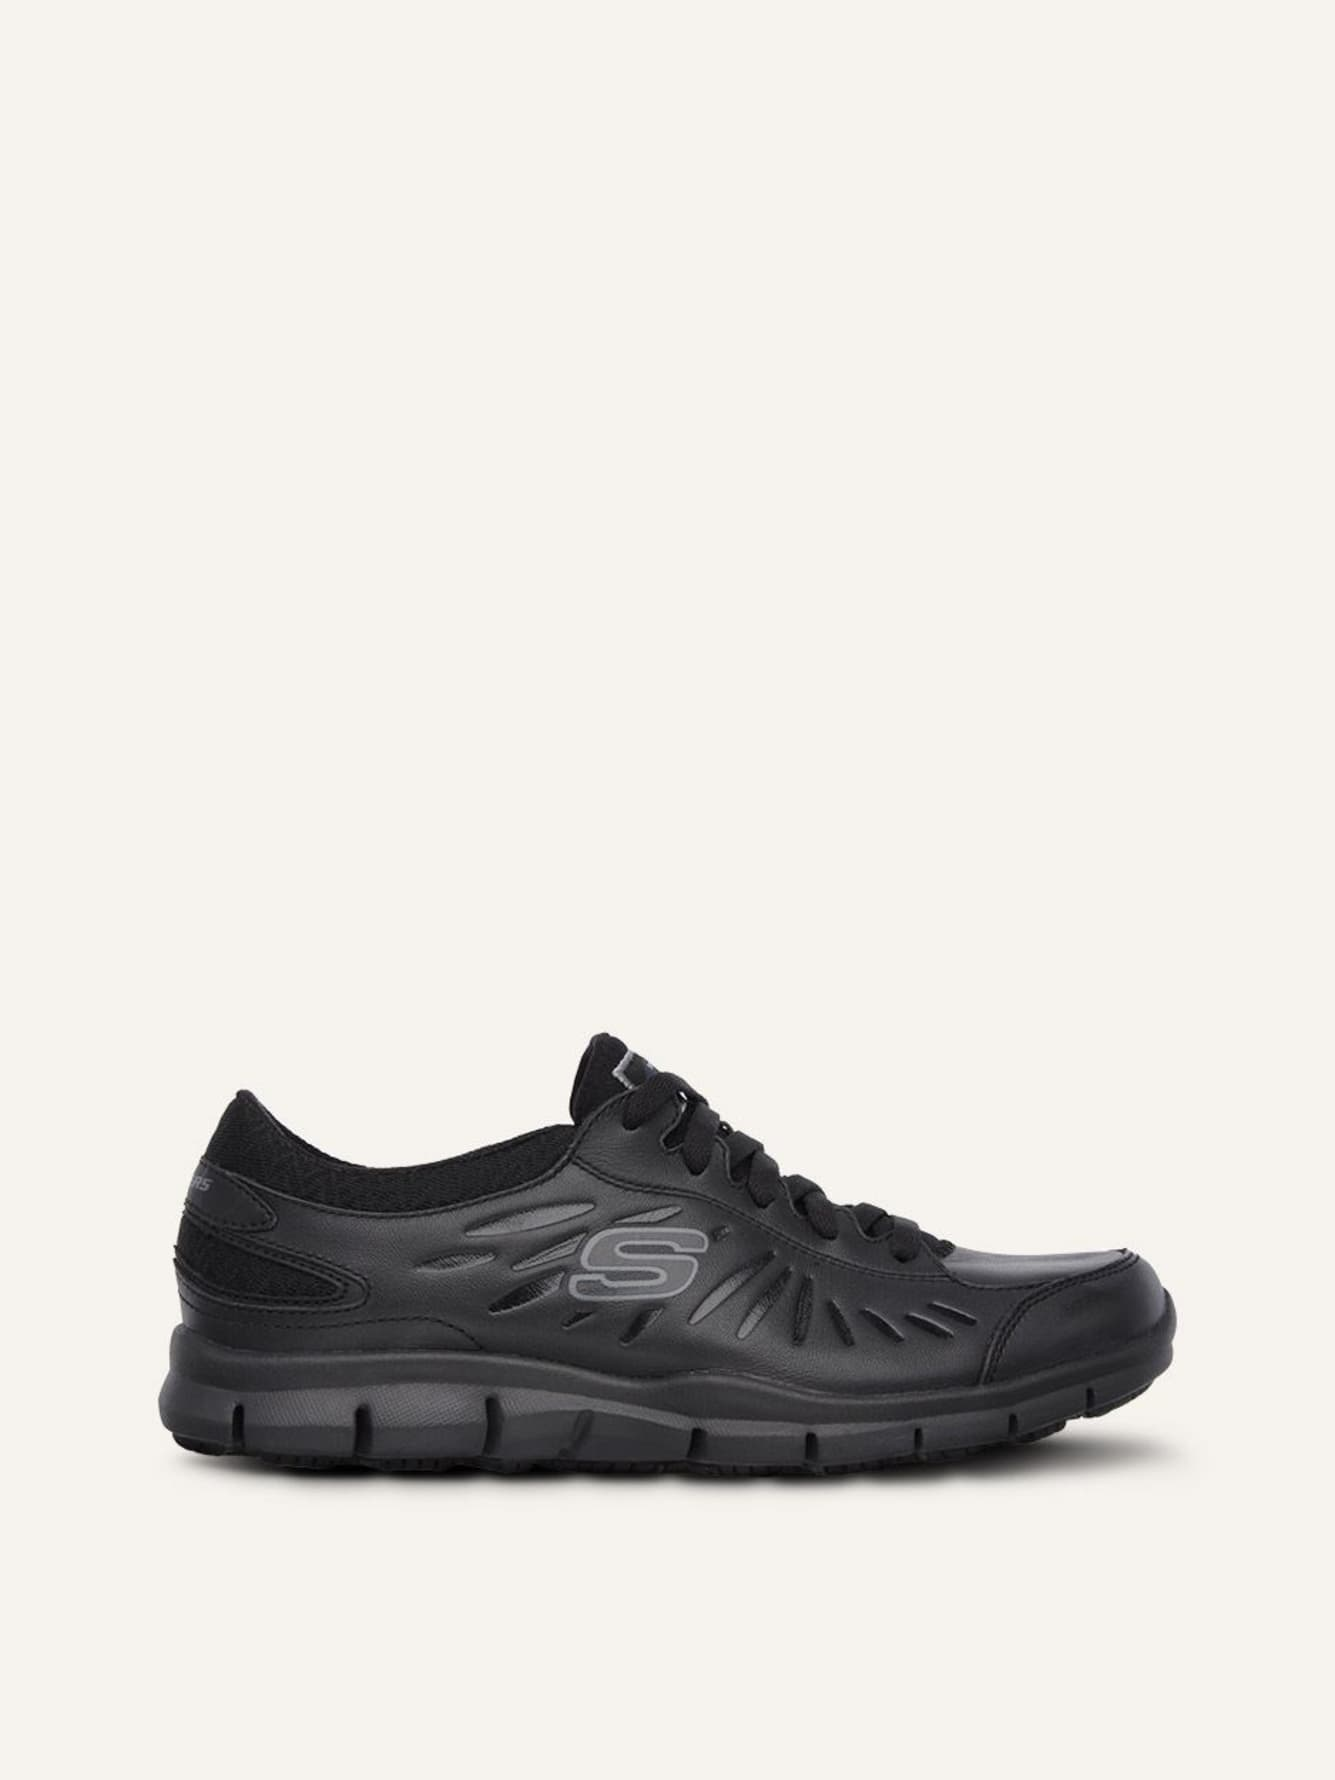 Skechers Relaxed Fit, Eldred SR - Chaussures de travail pieds larges